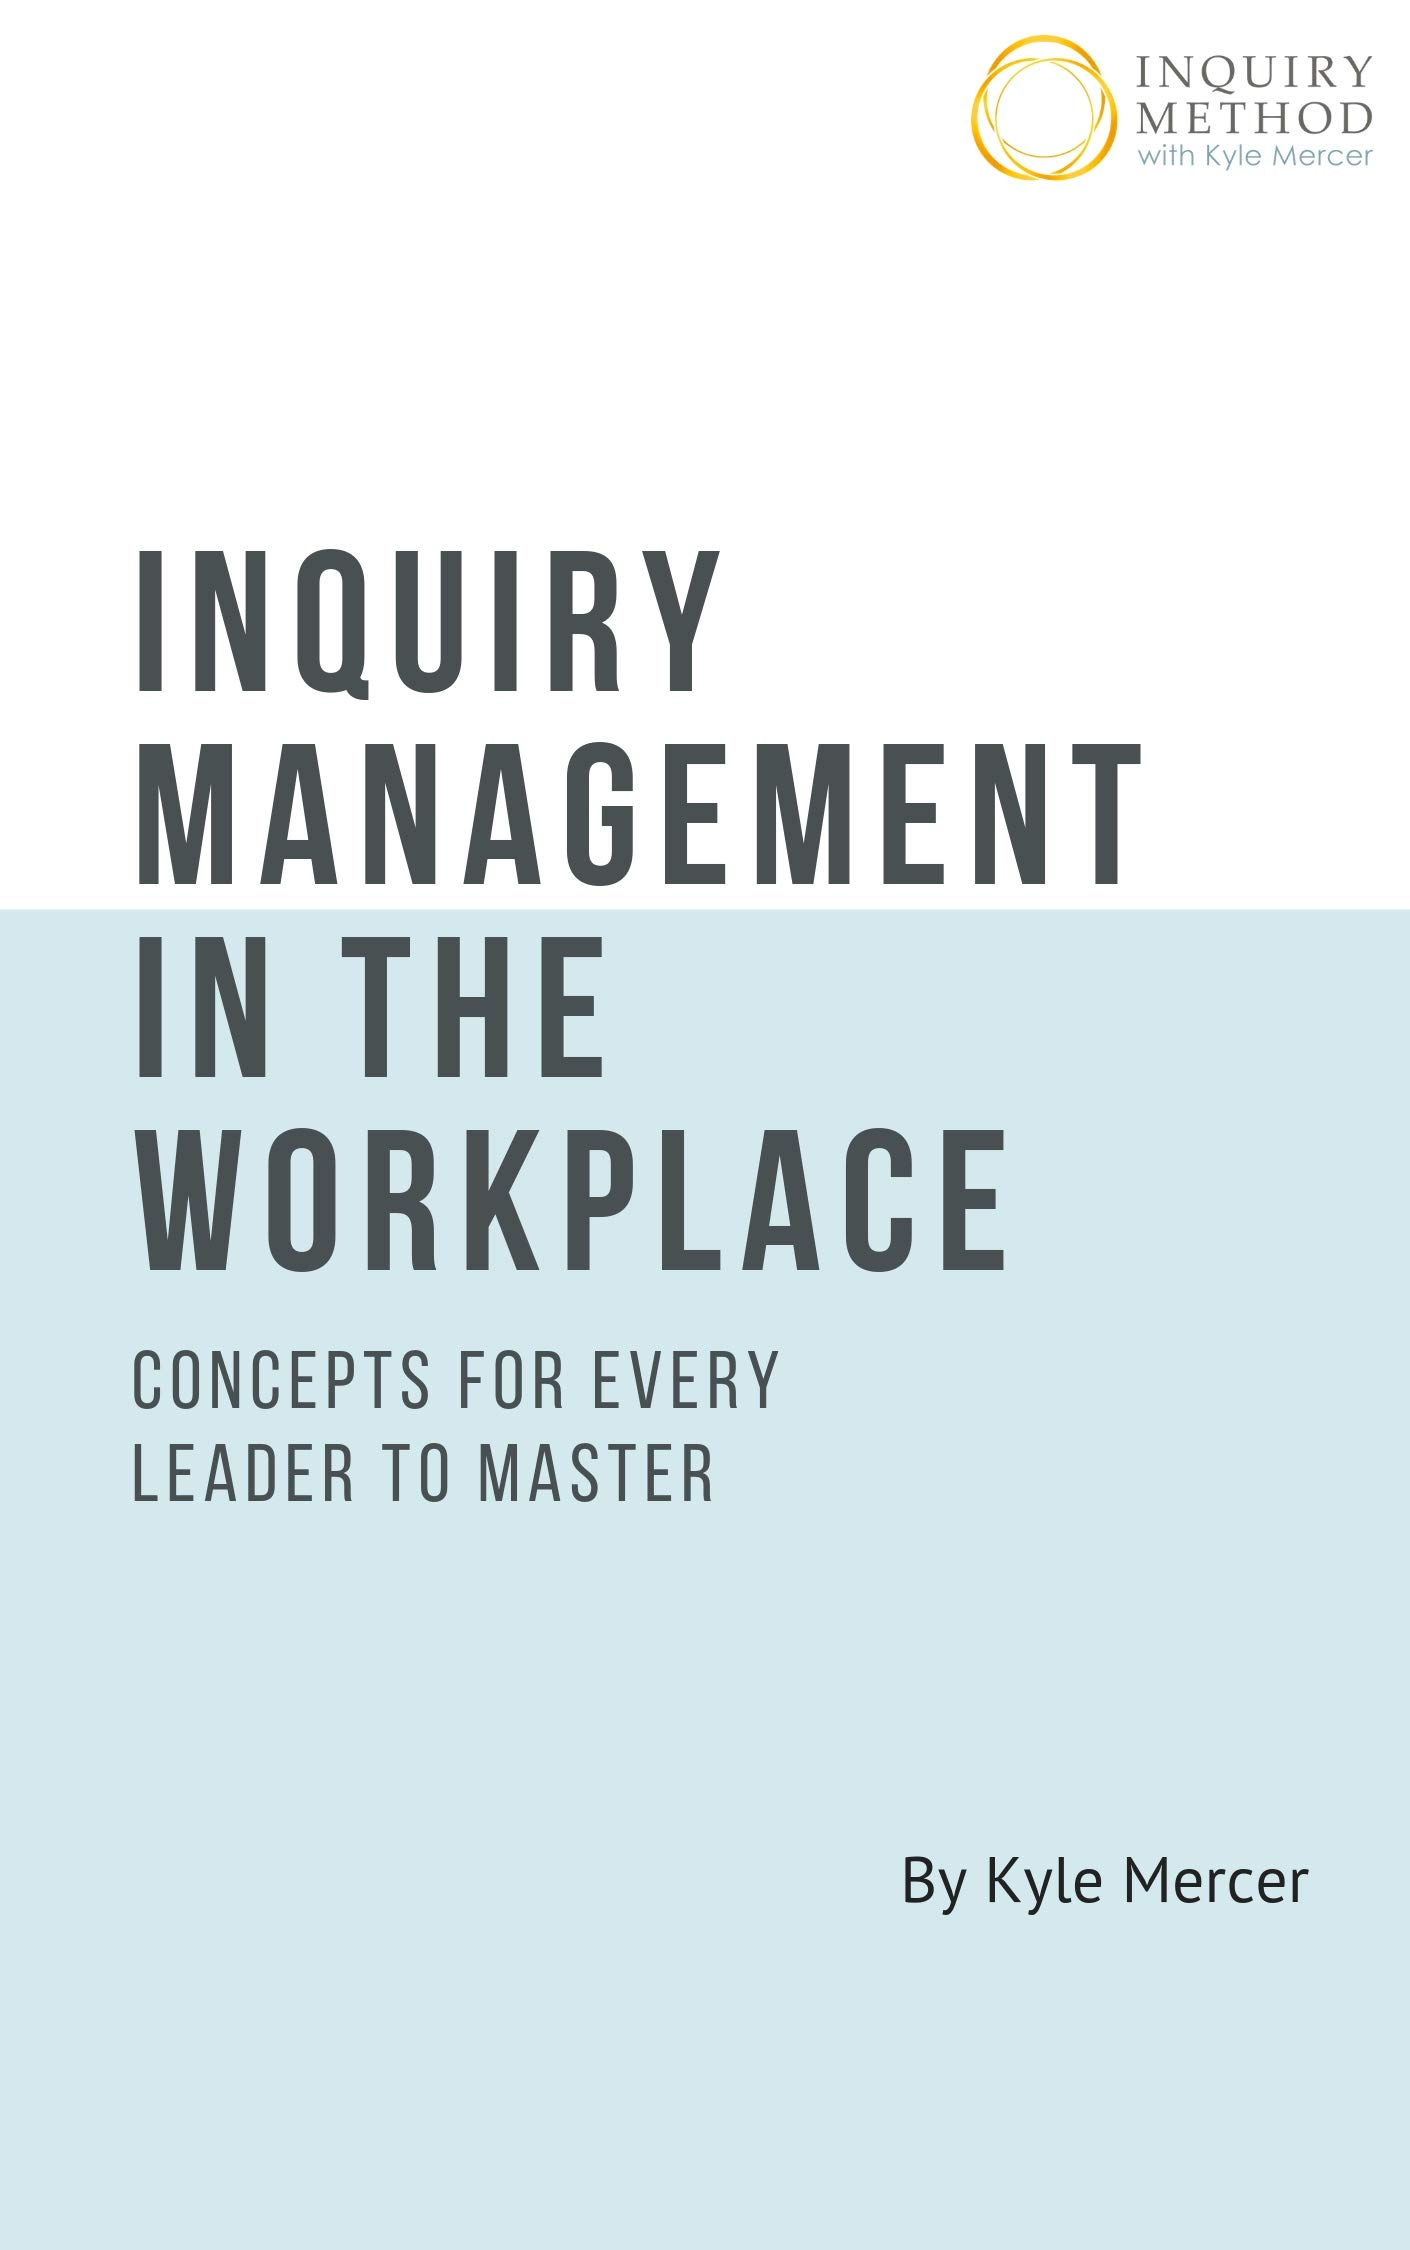 Inquiry Management in the Workplace: Concepts for Every Leader to Master